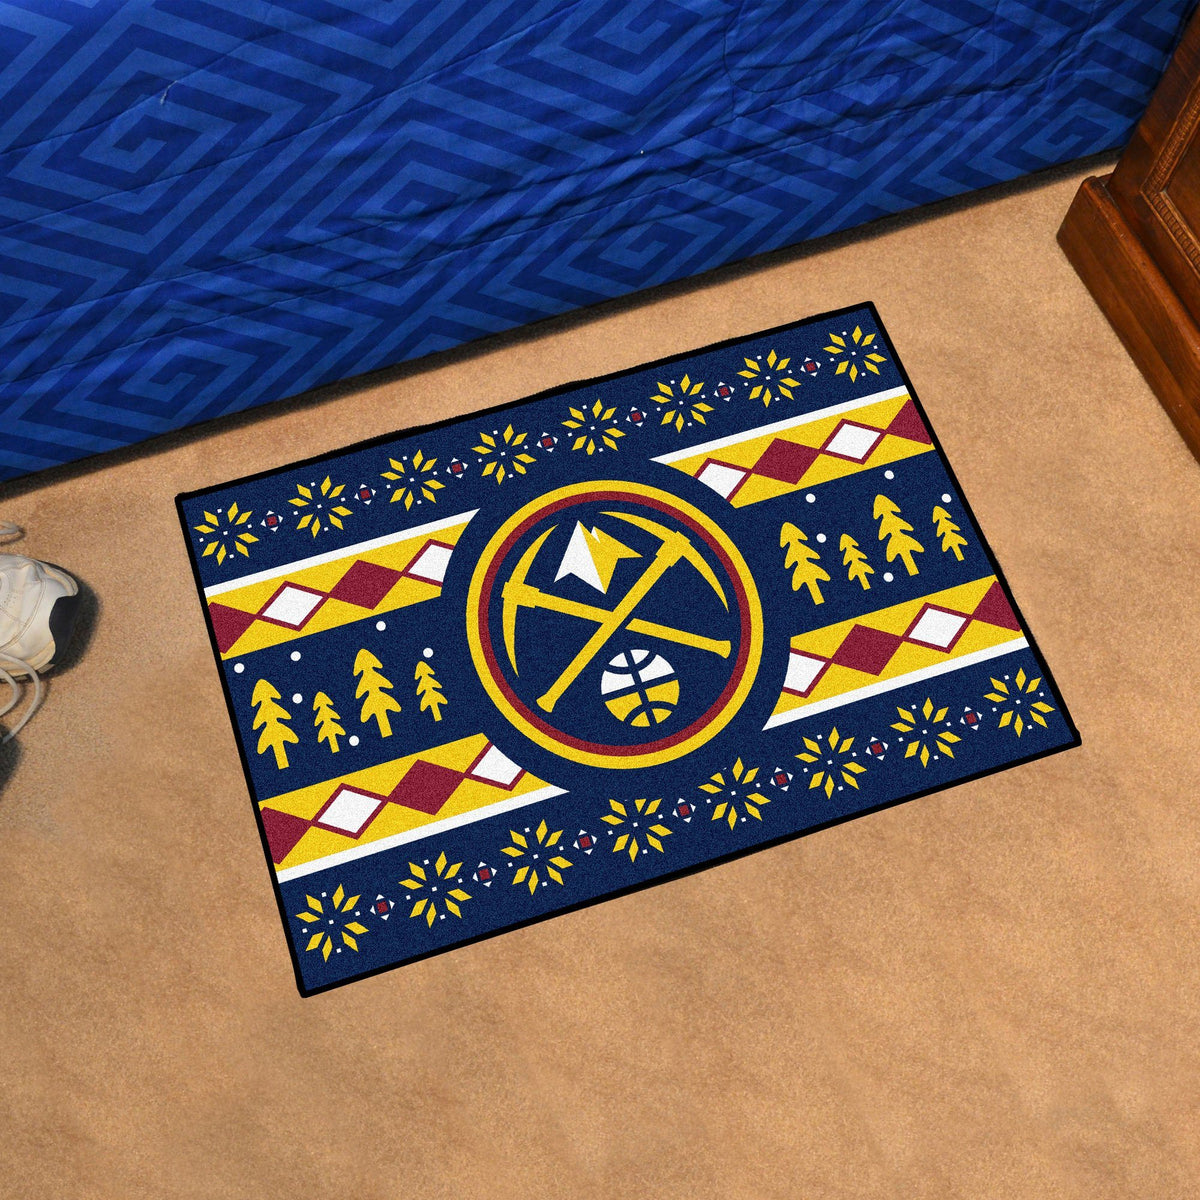 NBA - Holiday Sweater Starter Mat NBA Mats, Rectangular Mats, Holiday Sweater Starter Mat, NBA, Home Fan Mats Denver Nuggets